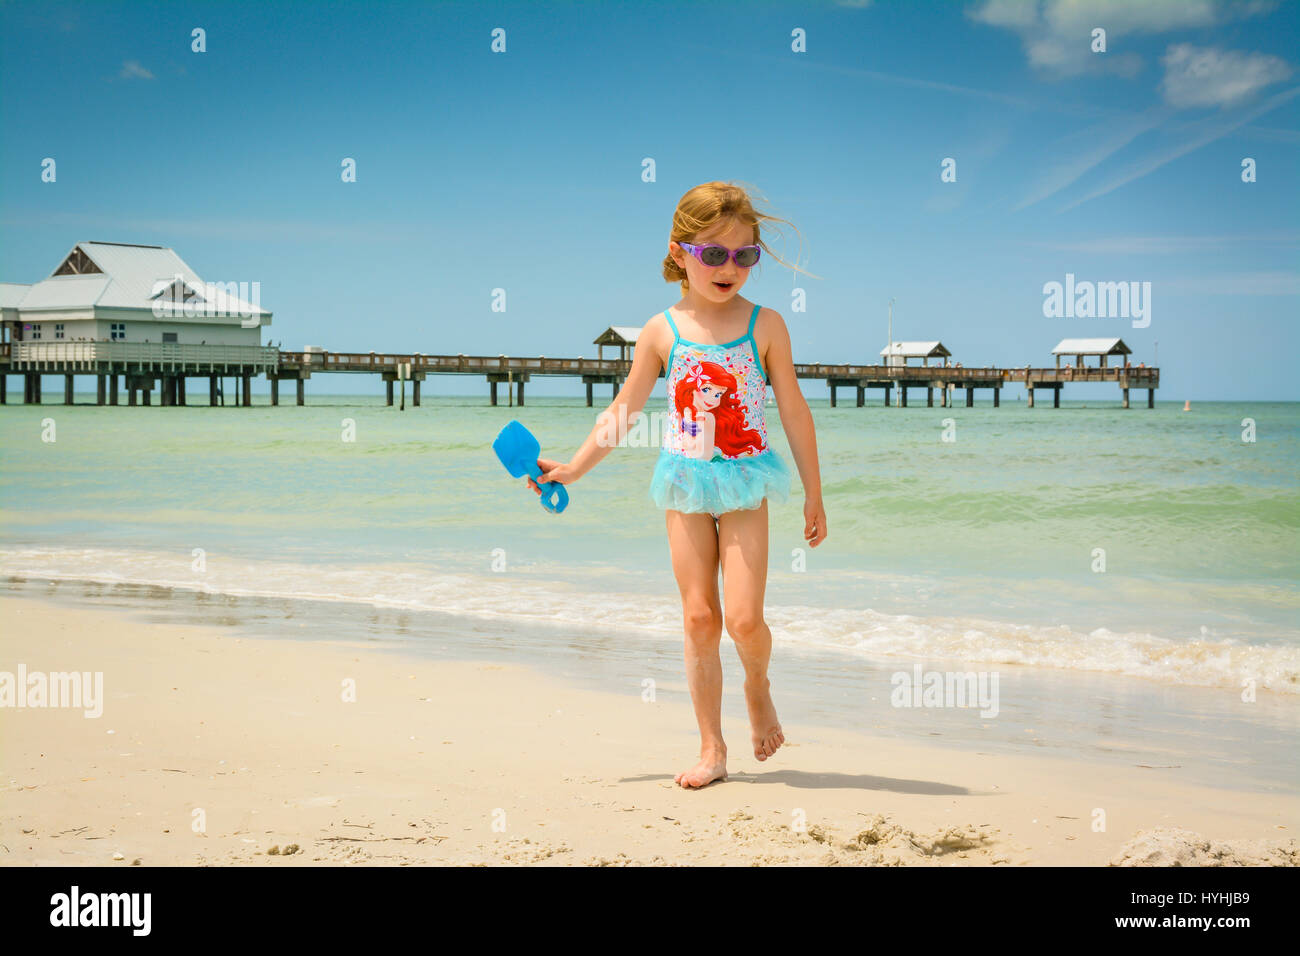 young blond girl in blue bathingsuit plays on white sand beach at Clearwater Beach, FL with Pier 60 and the shoreline - Stock Image